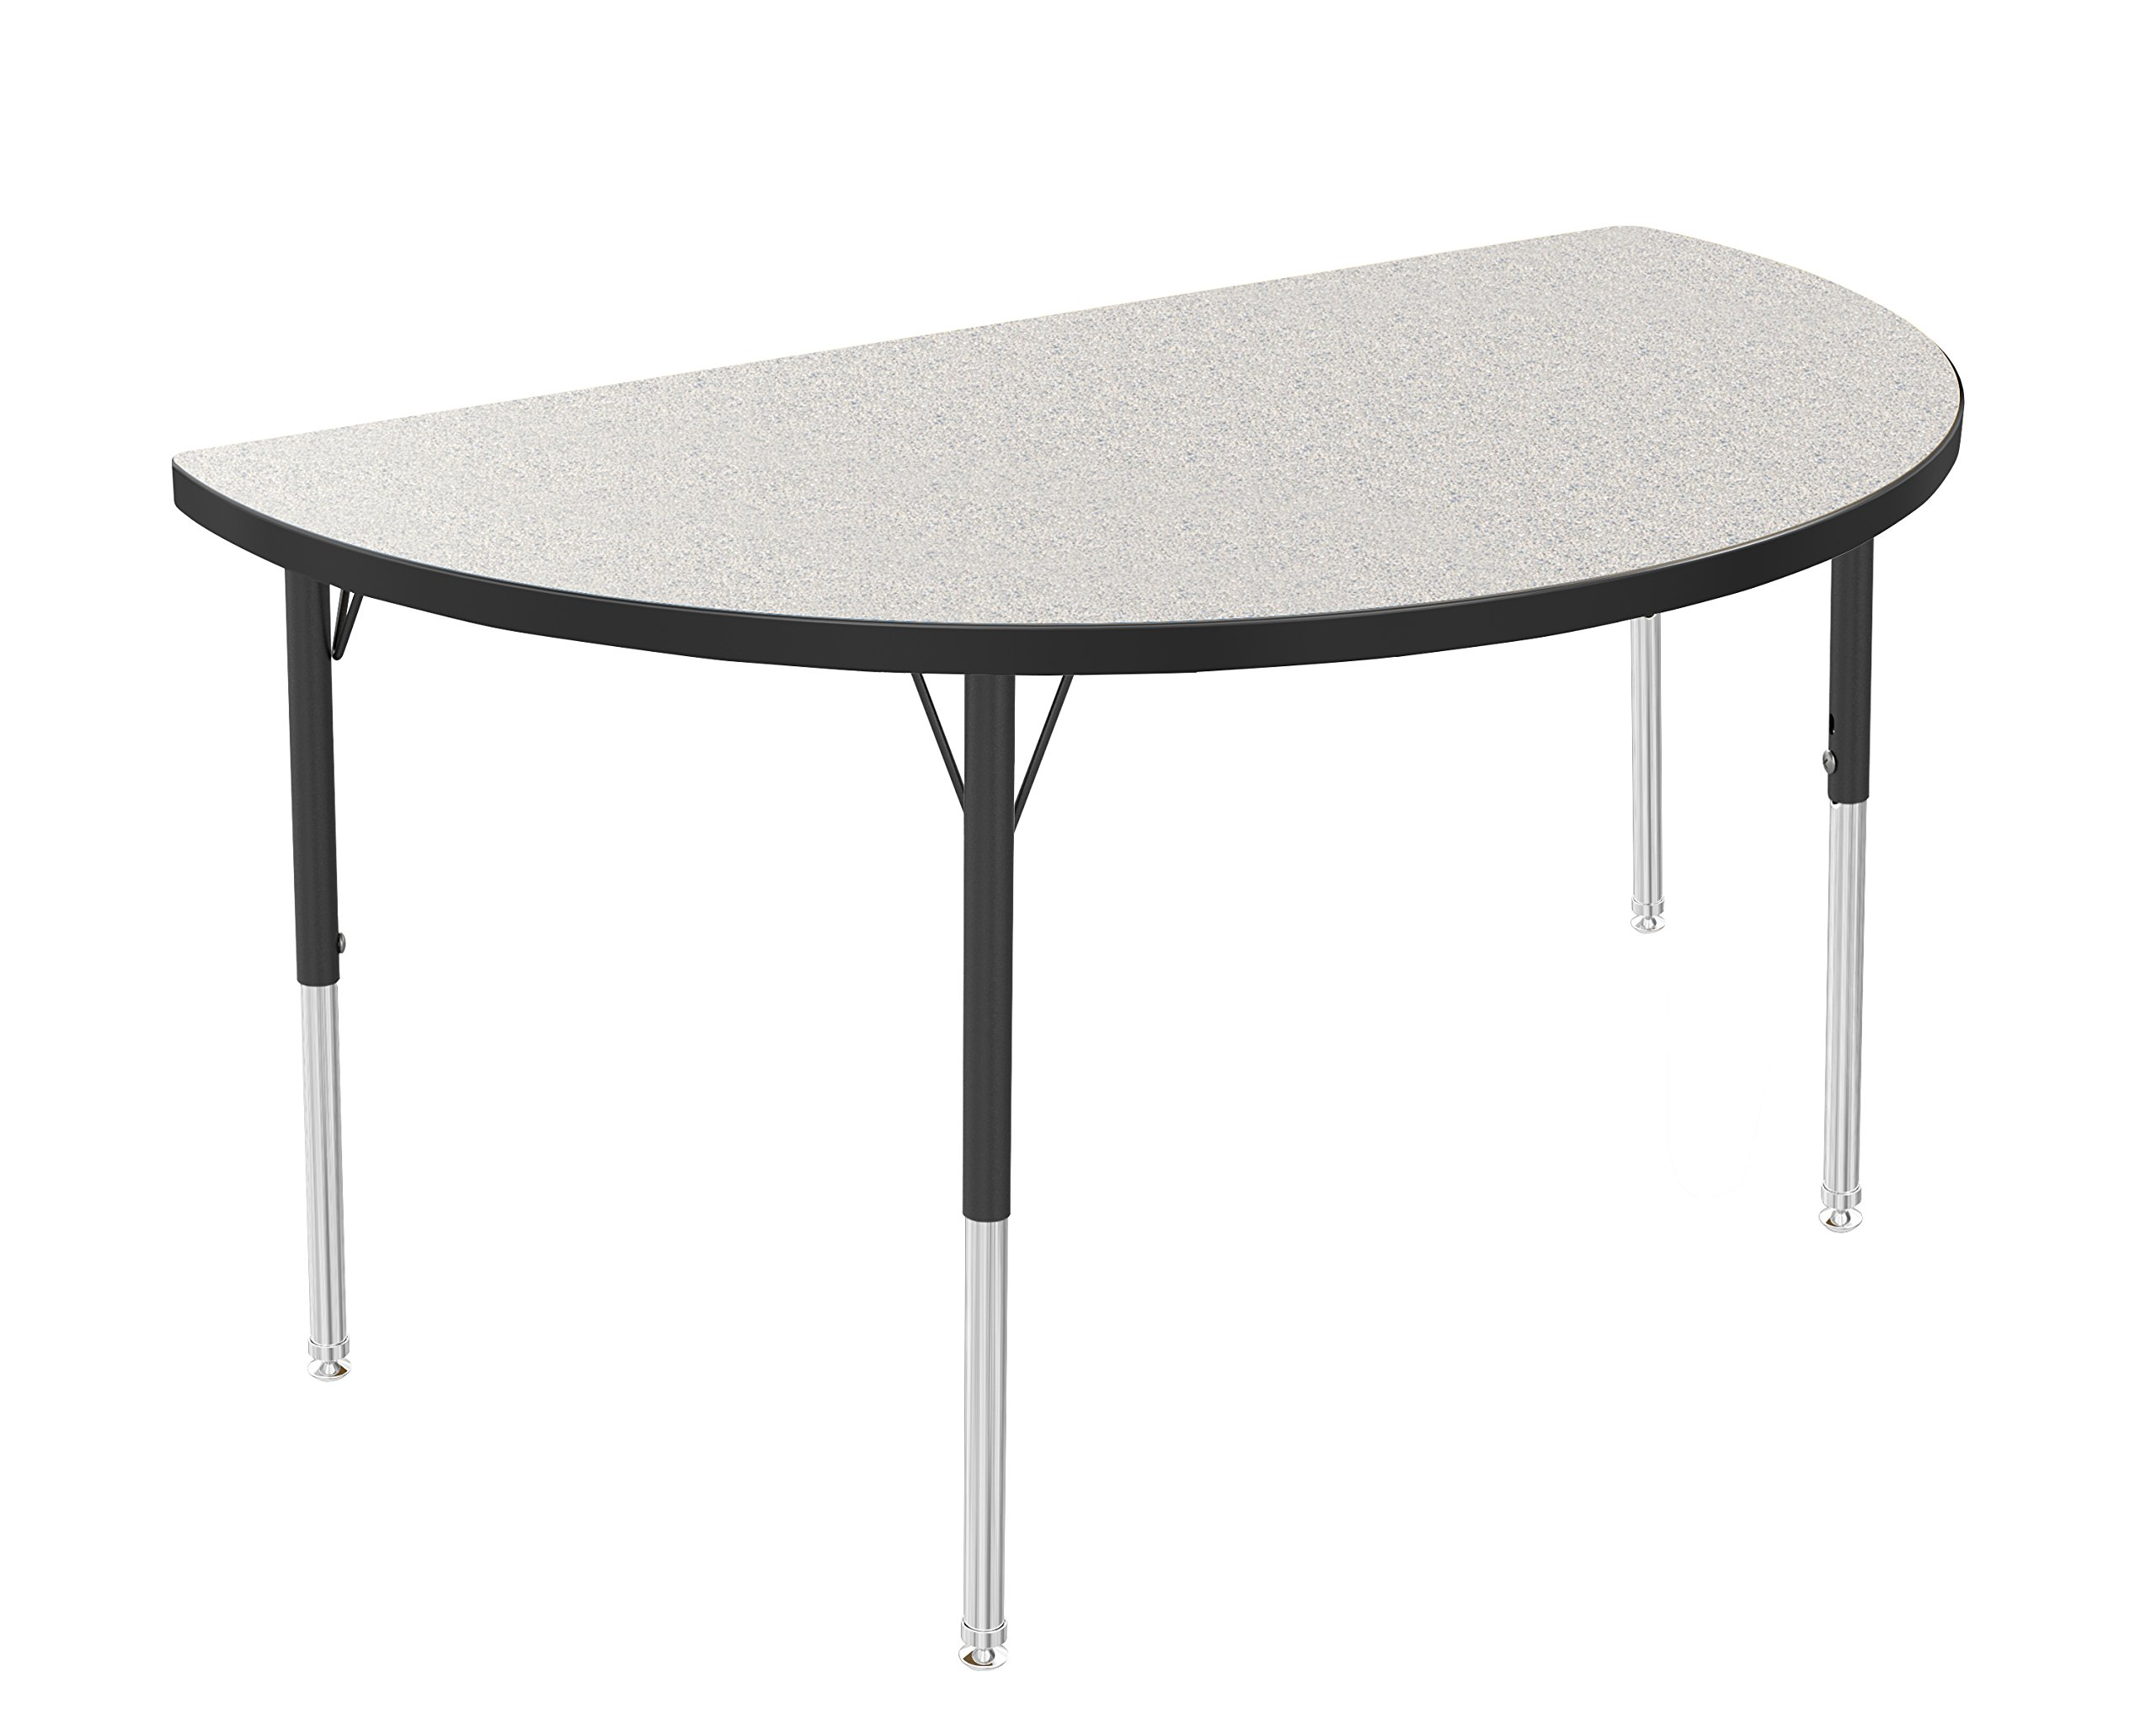 Marco Group Half Round Adjustable Activity Table, 48'' Length, Gray Glace, Black Trim, Standard Legs